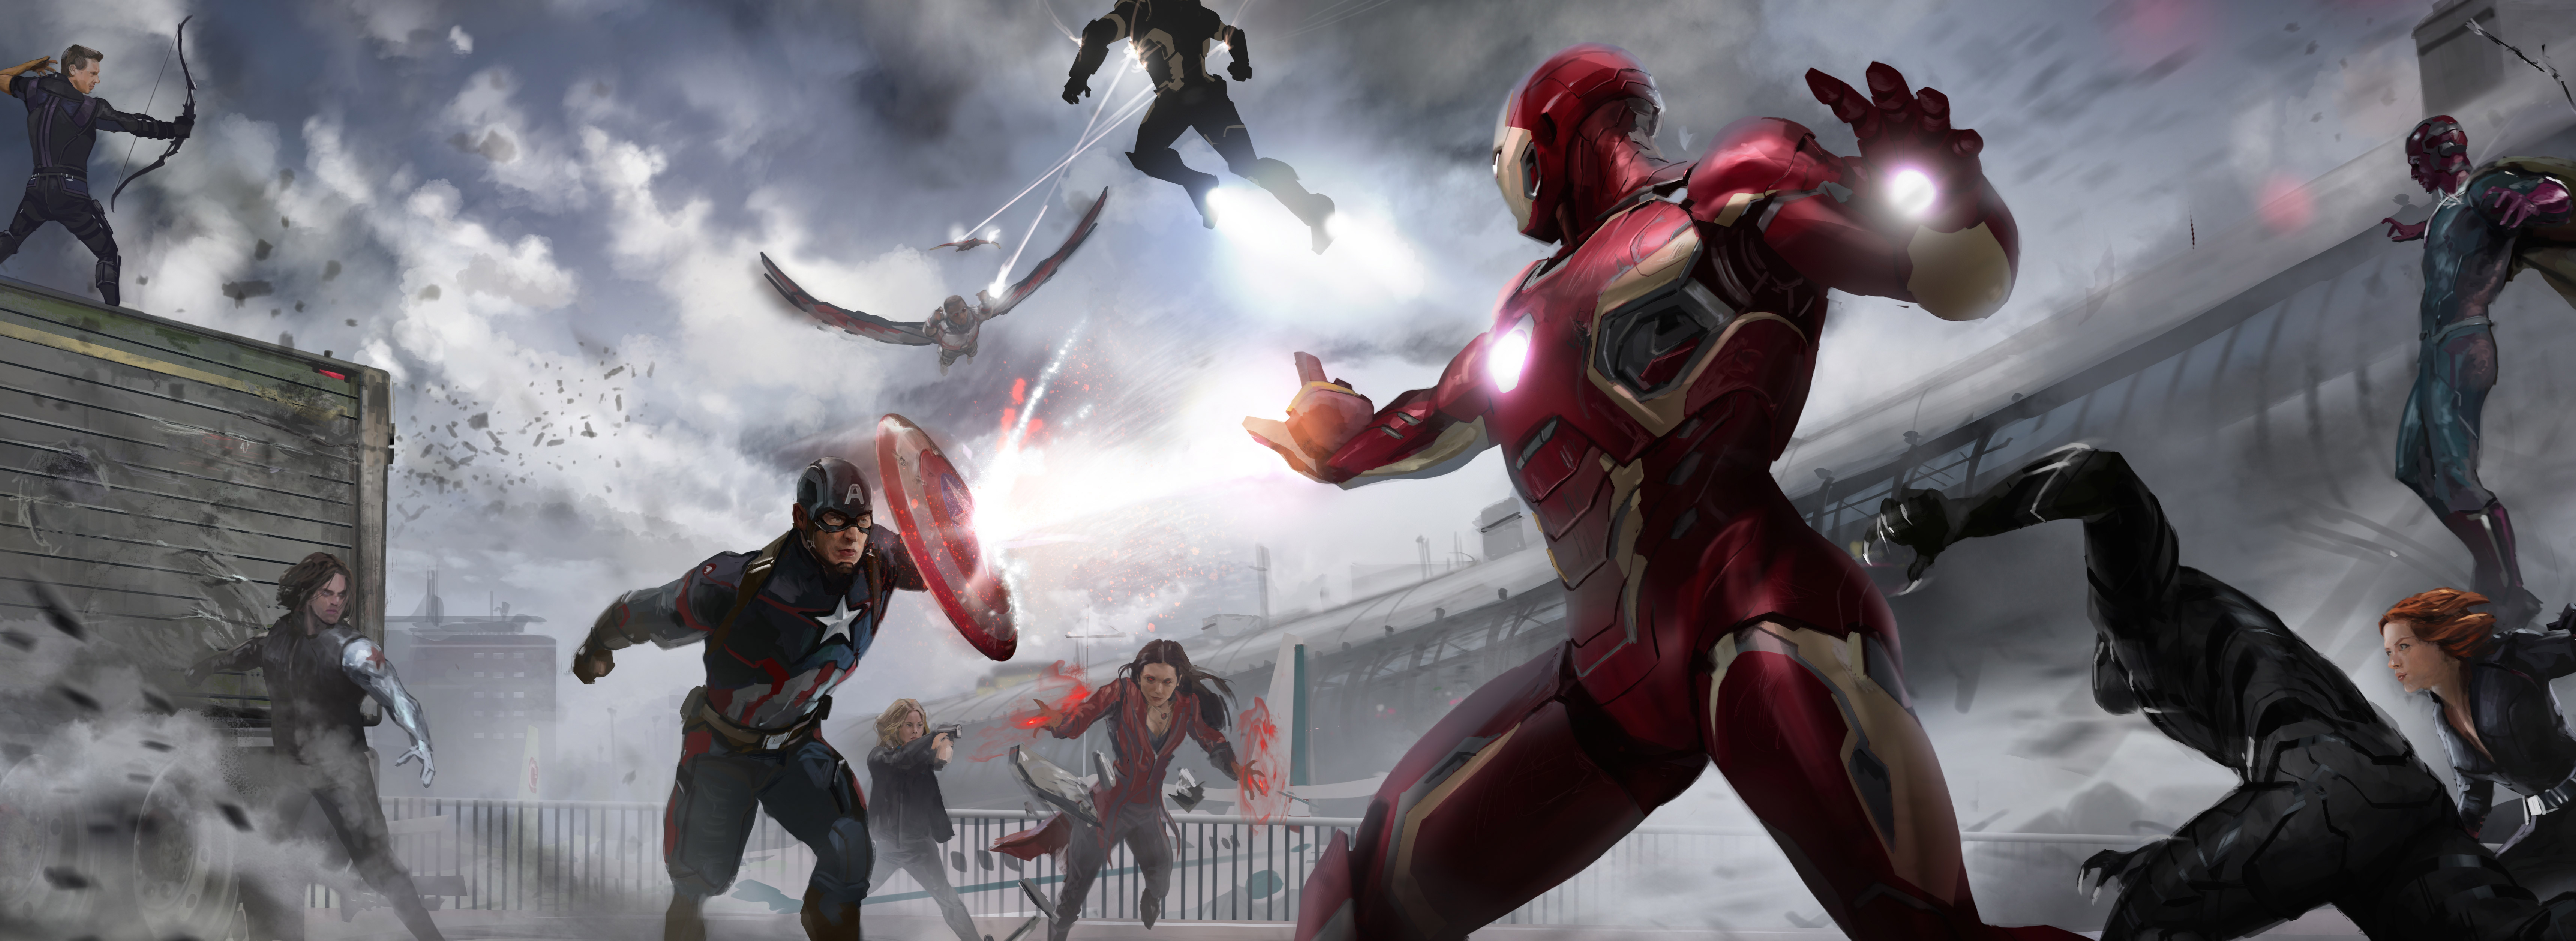 marvel civil war artwork hd movies 4k wallpapers images backgrounds photos and pictures. Black Bedroom Furniture Sets. Home Design Ideas